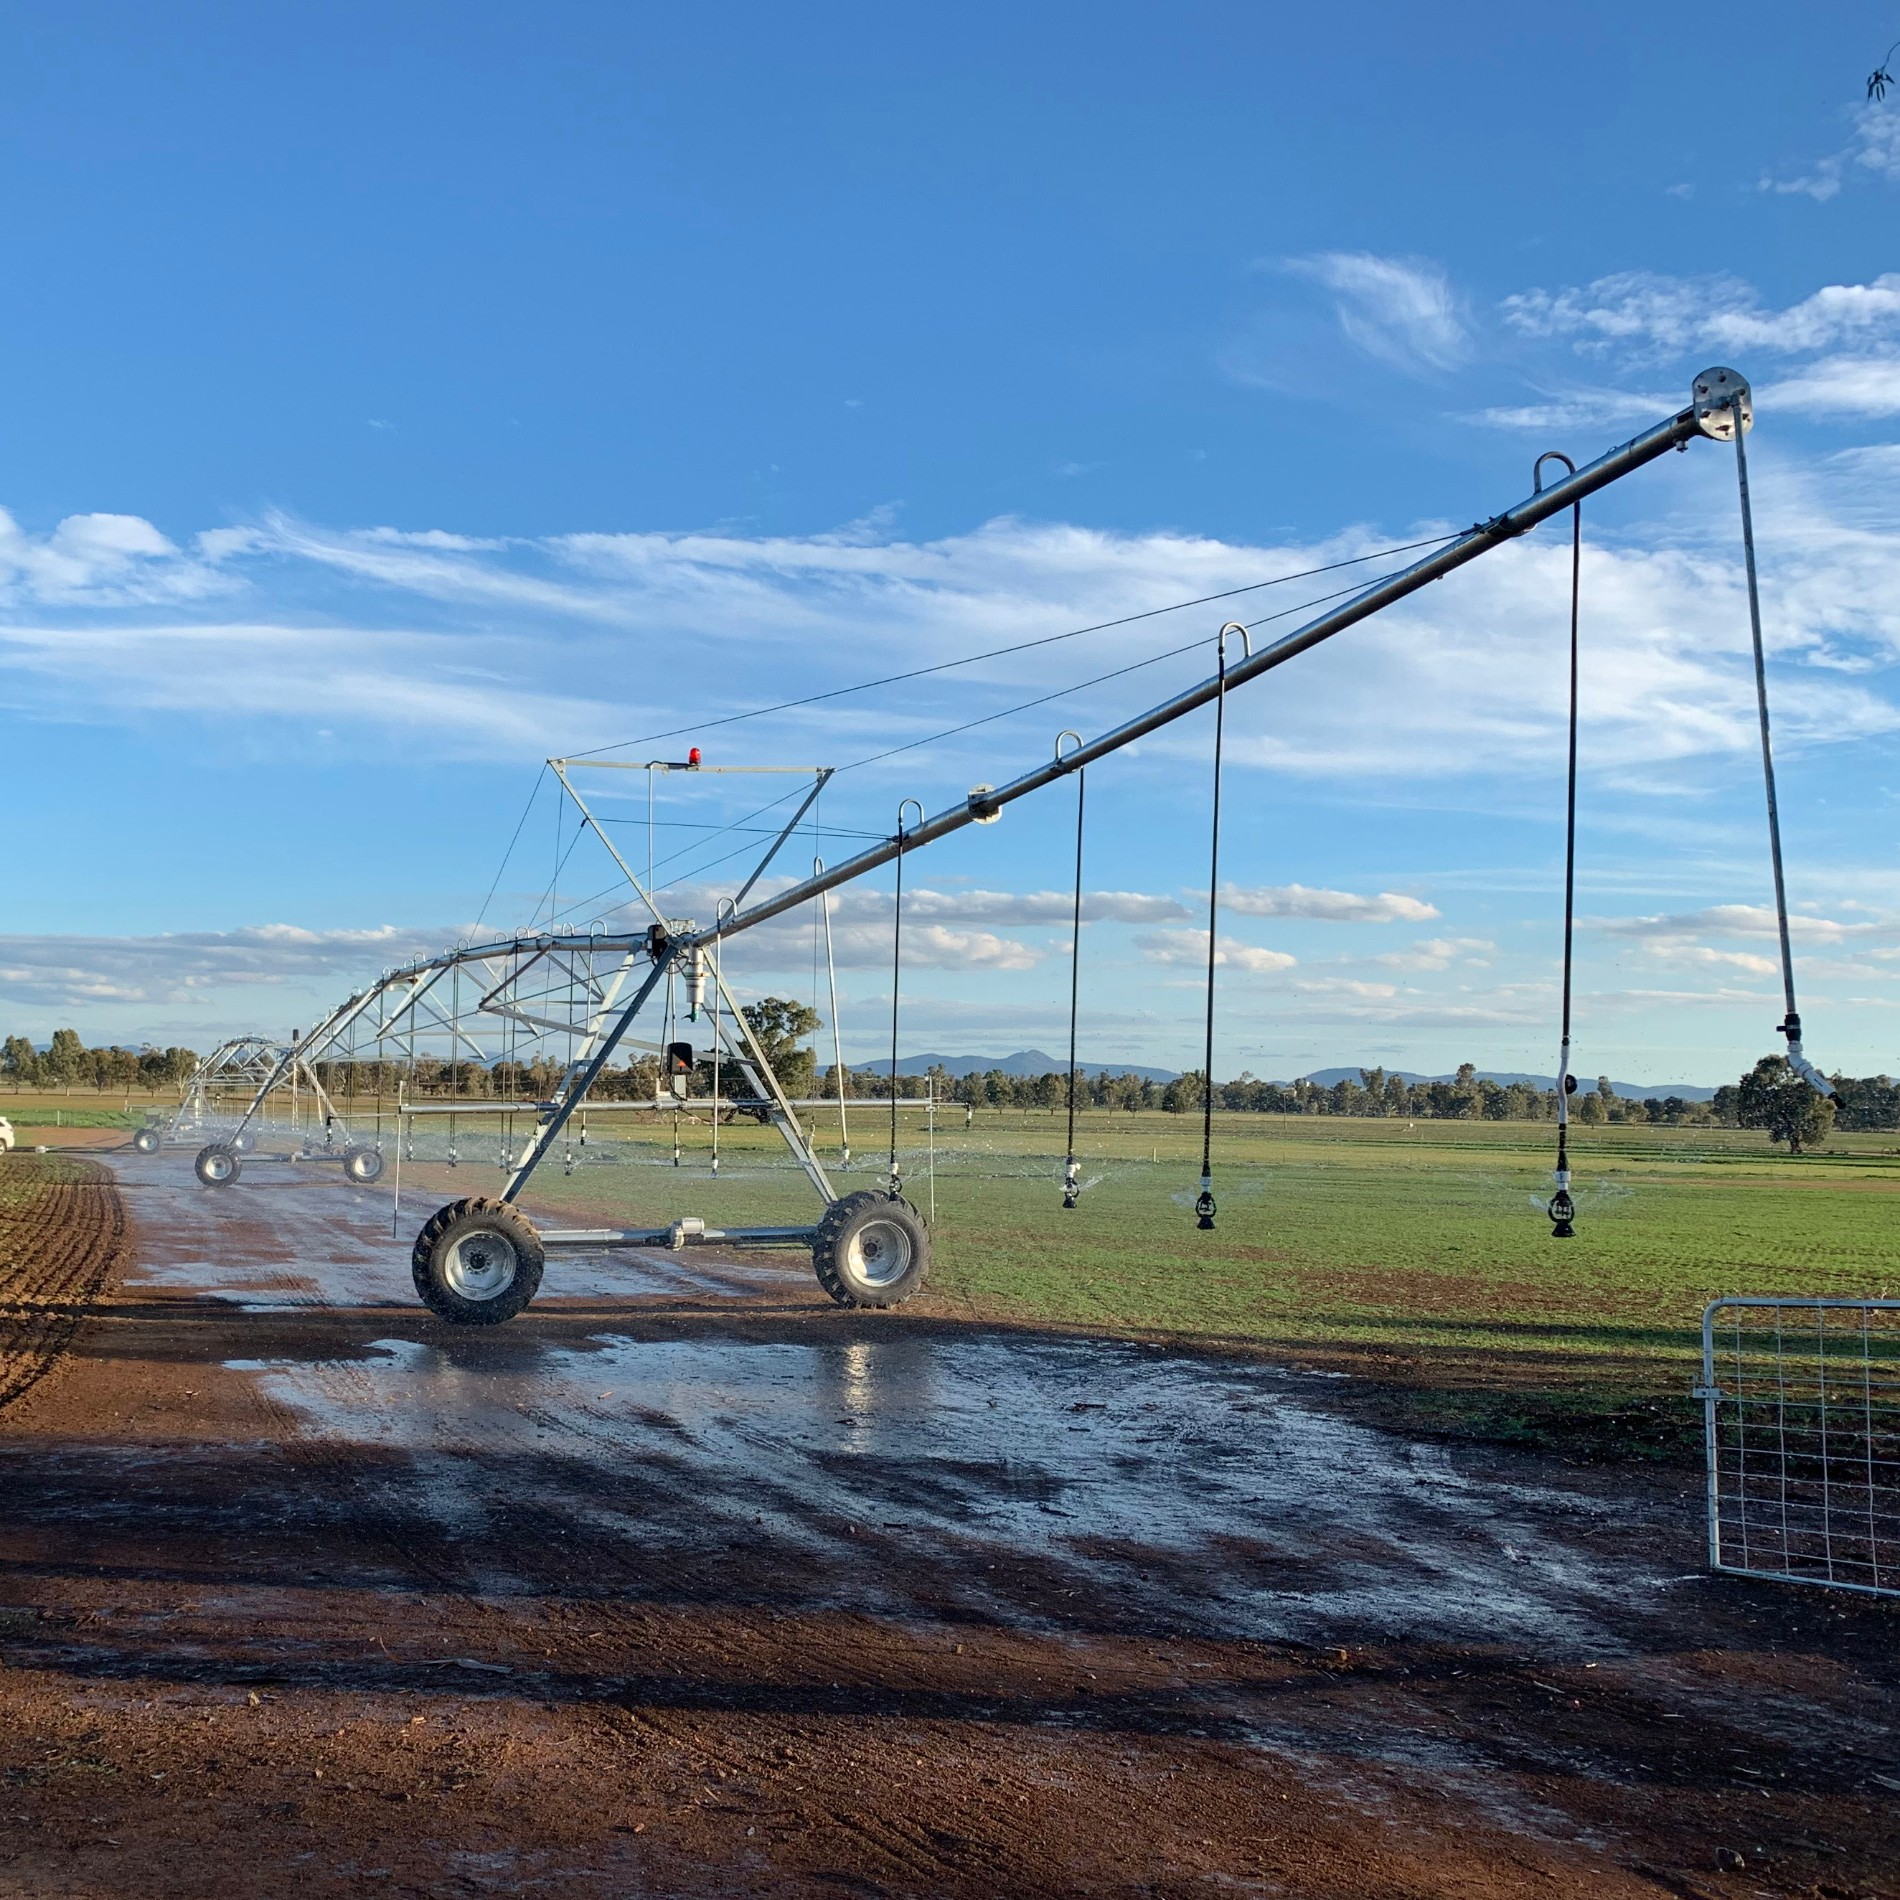 DYP fixed pivot center irrigation equipments Manufacturers, DYP fixed pivot center irrigation equipments Factory, Supply DYP fixed pivot center irrigation equipments